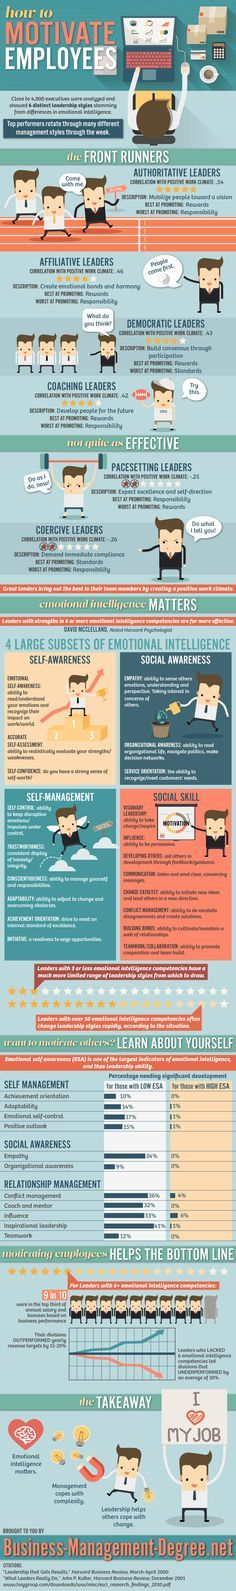 A great infographic with recent data and practical advice on how to motivate employees, courtesy of Business-Management-Degree.